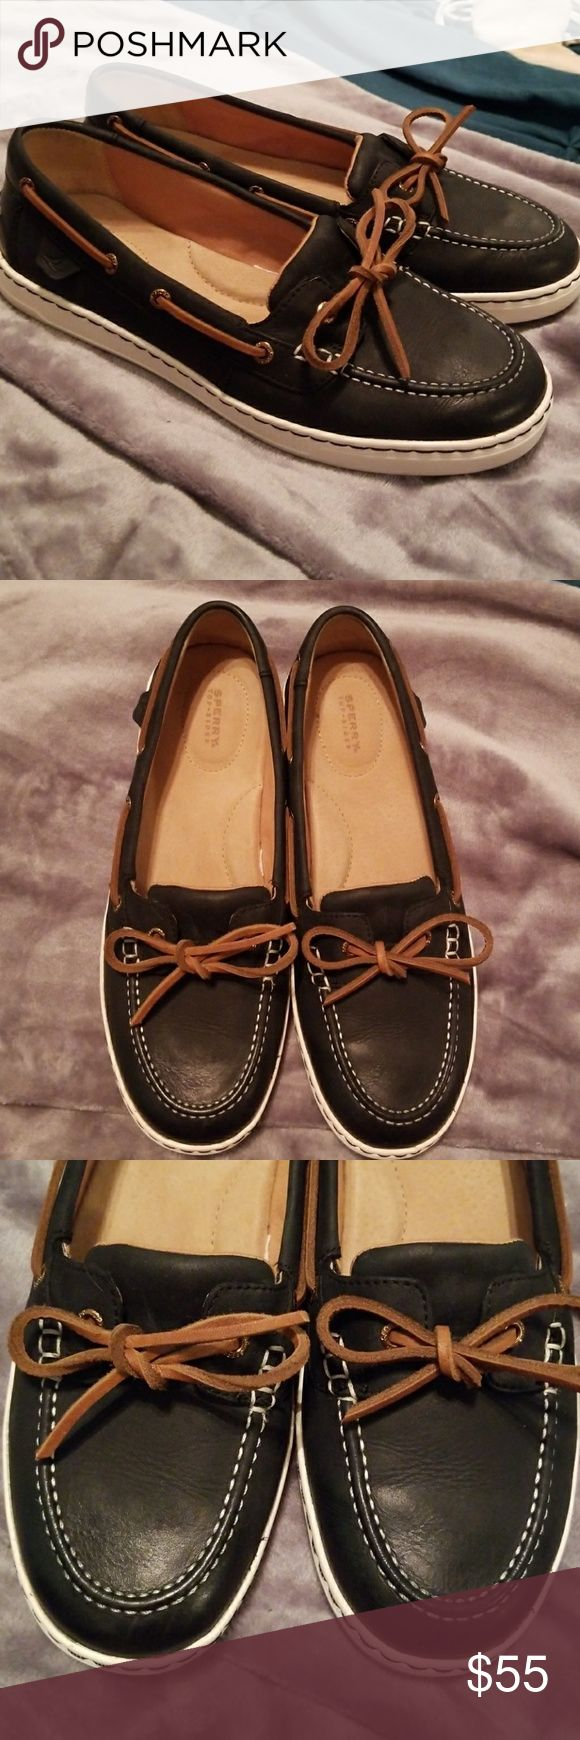 Sperry Top-Sider Boat Shoes Size 8 women's. Worn once because they are too small on me. Like new. Black leather, white sole, brown laces. Sperry Shoes